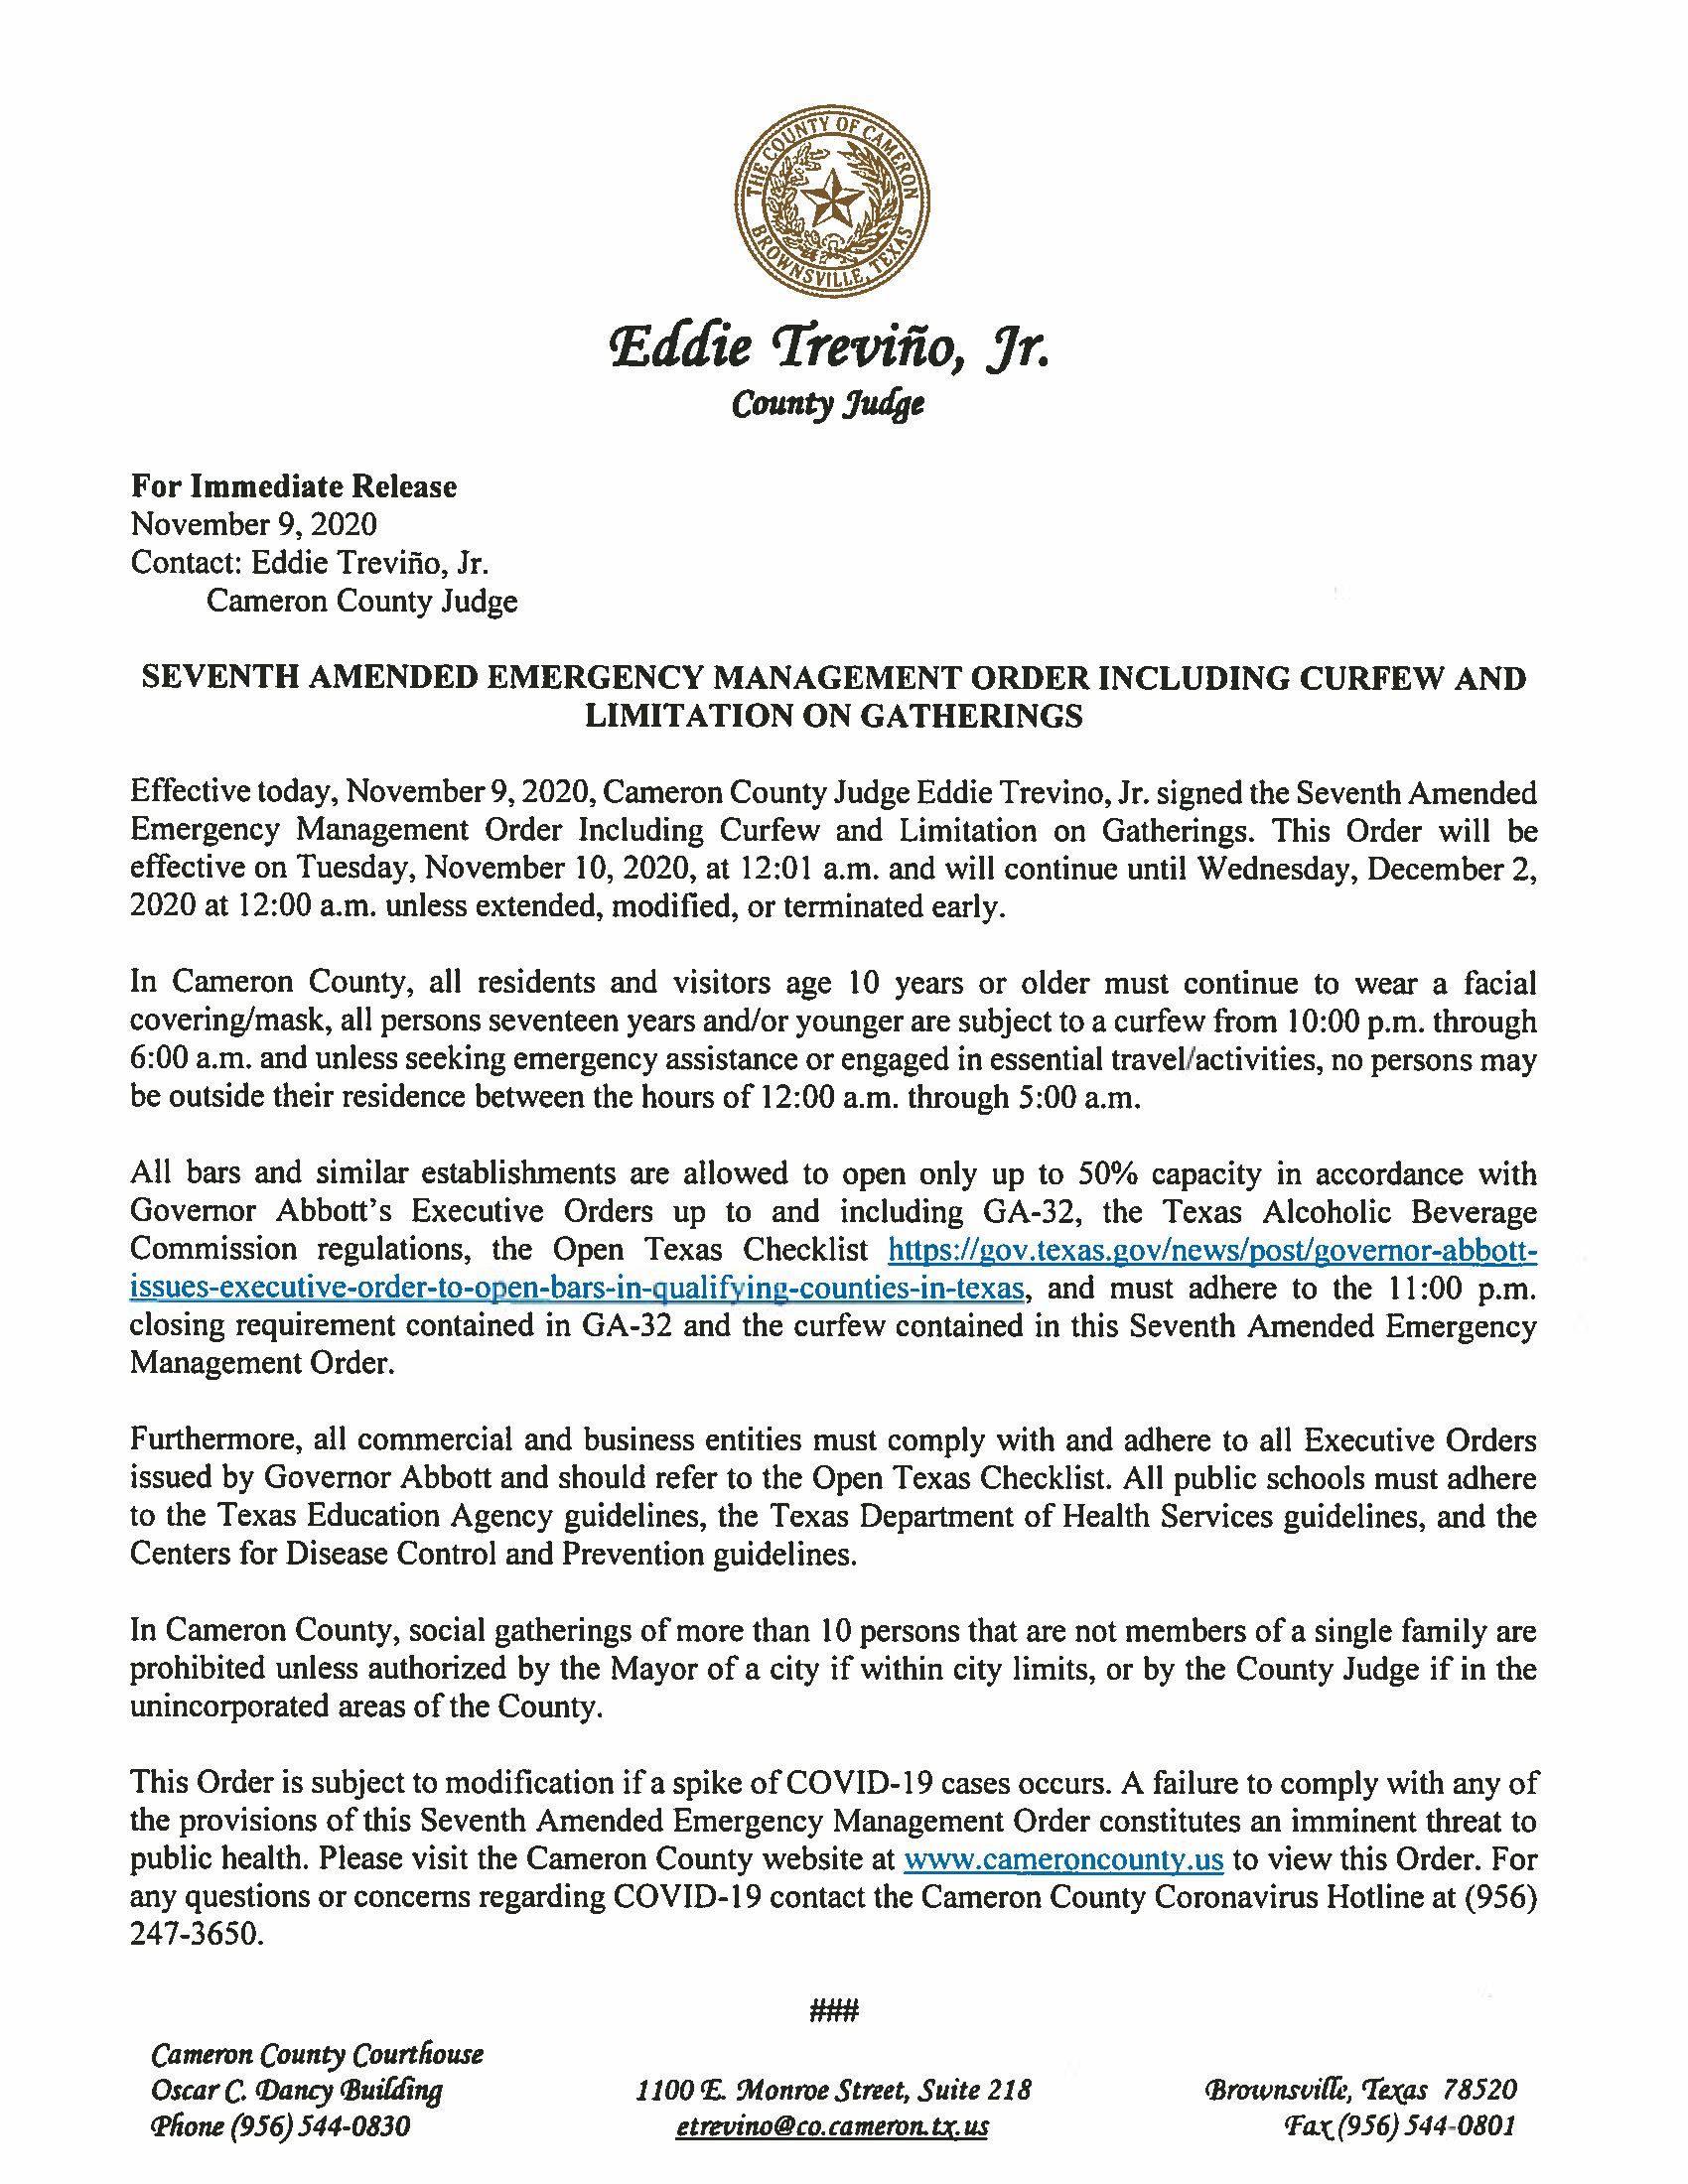 11.09.2020 For Immediate Release Seventh Amended Emergency Management Order